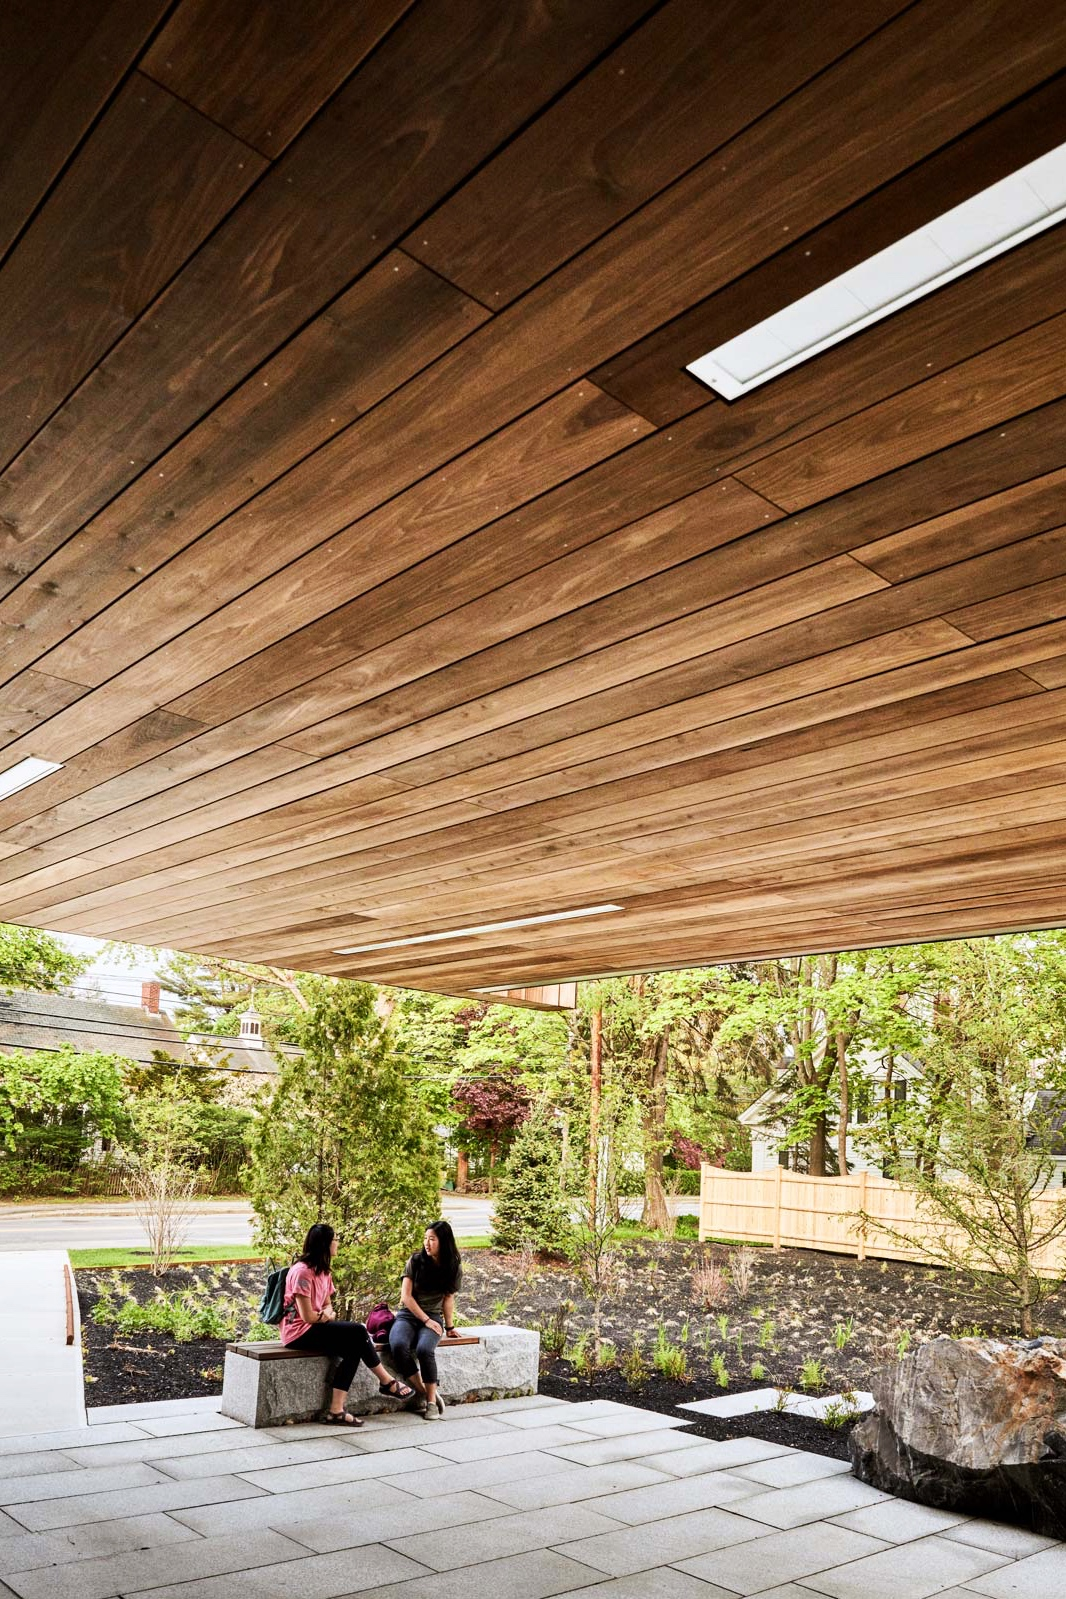 A terrace at the rear of the building offers a space to convene outdoors, while the flagstones and garden bed help to prevent stormwater runoff.